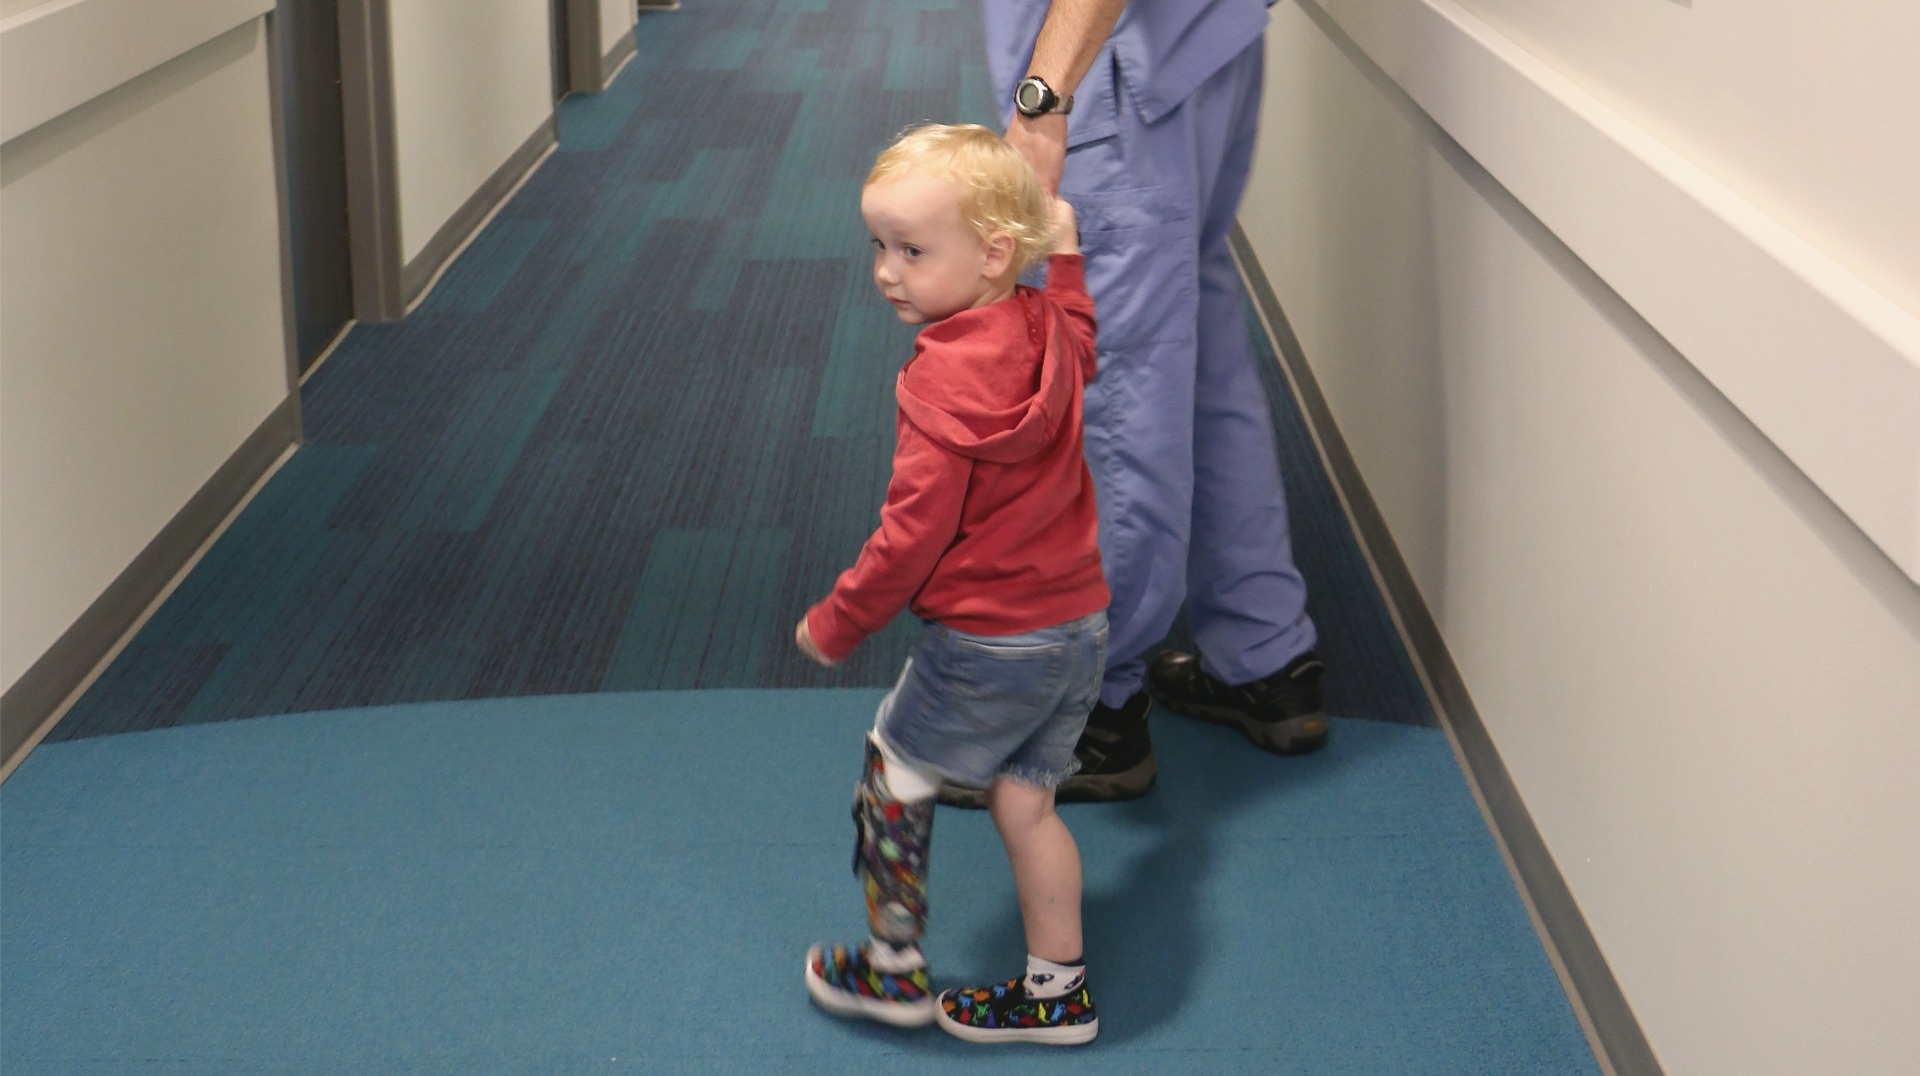 A doctor, who is out of frame, holds Arlo's hand as they walk together down a hallway.